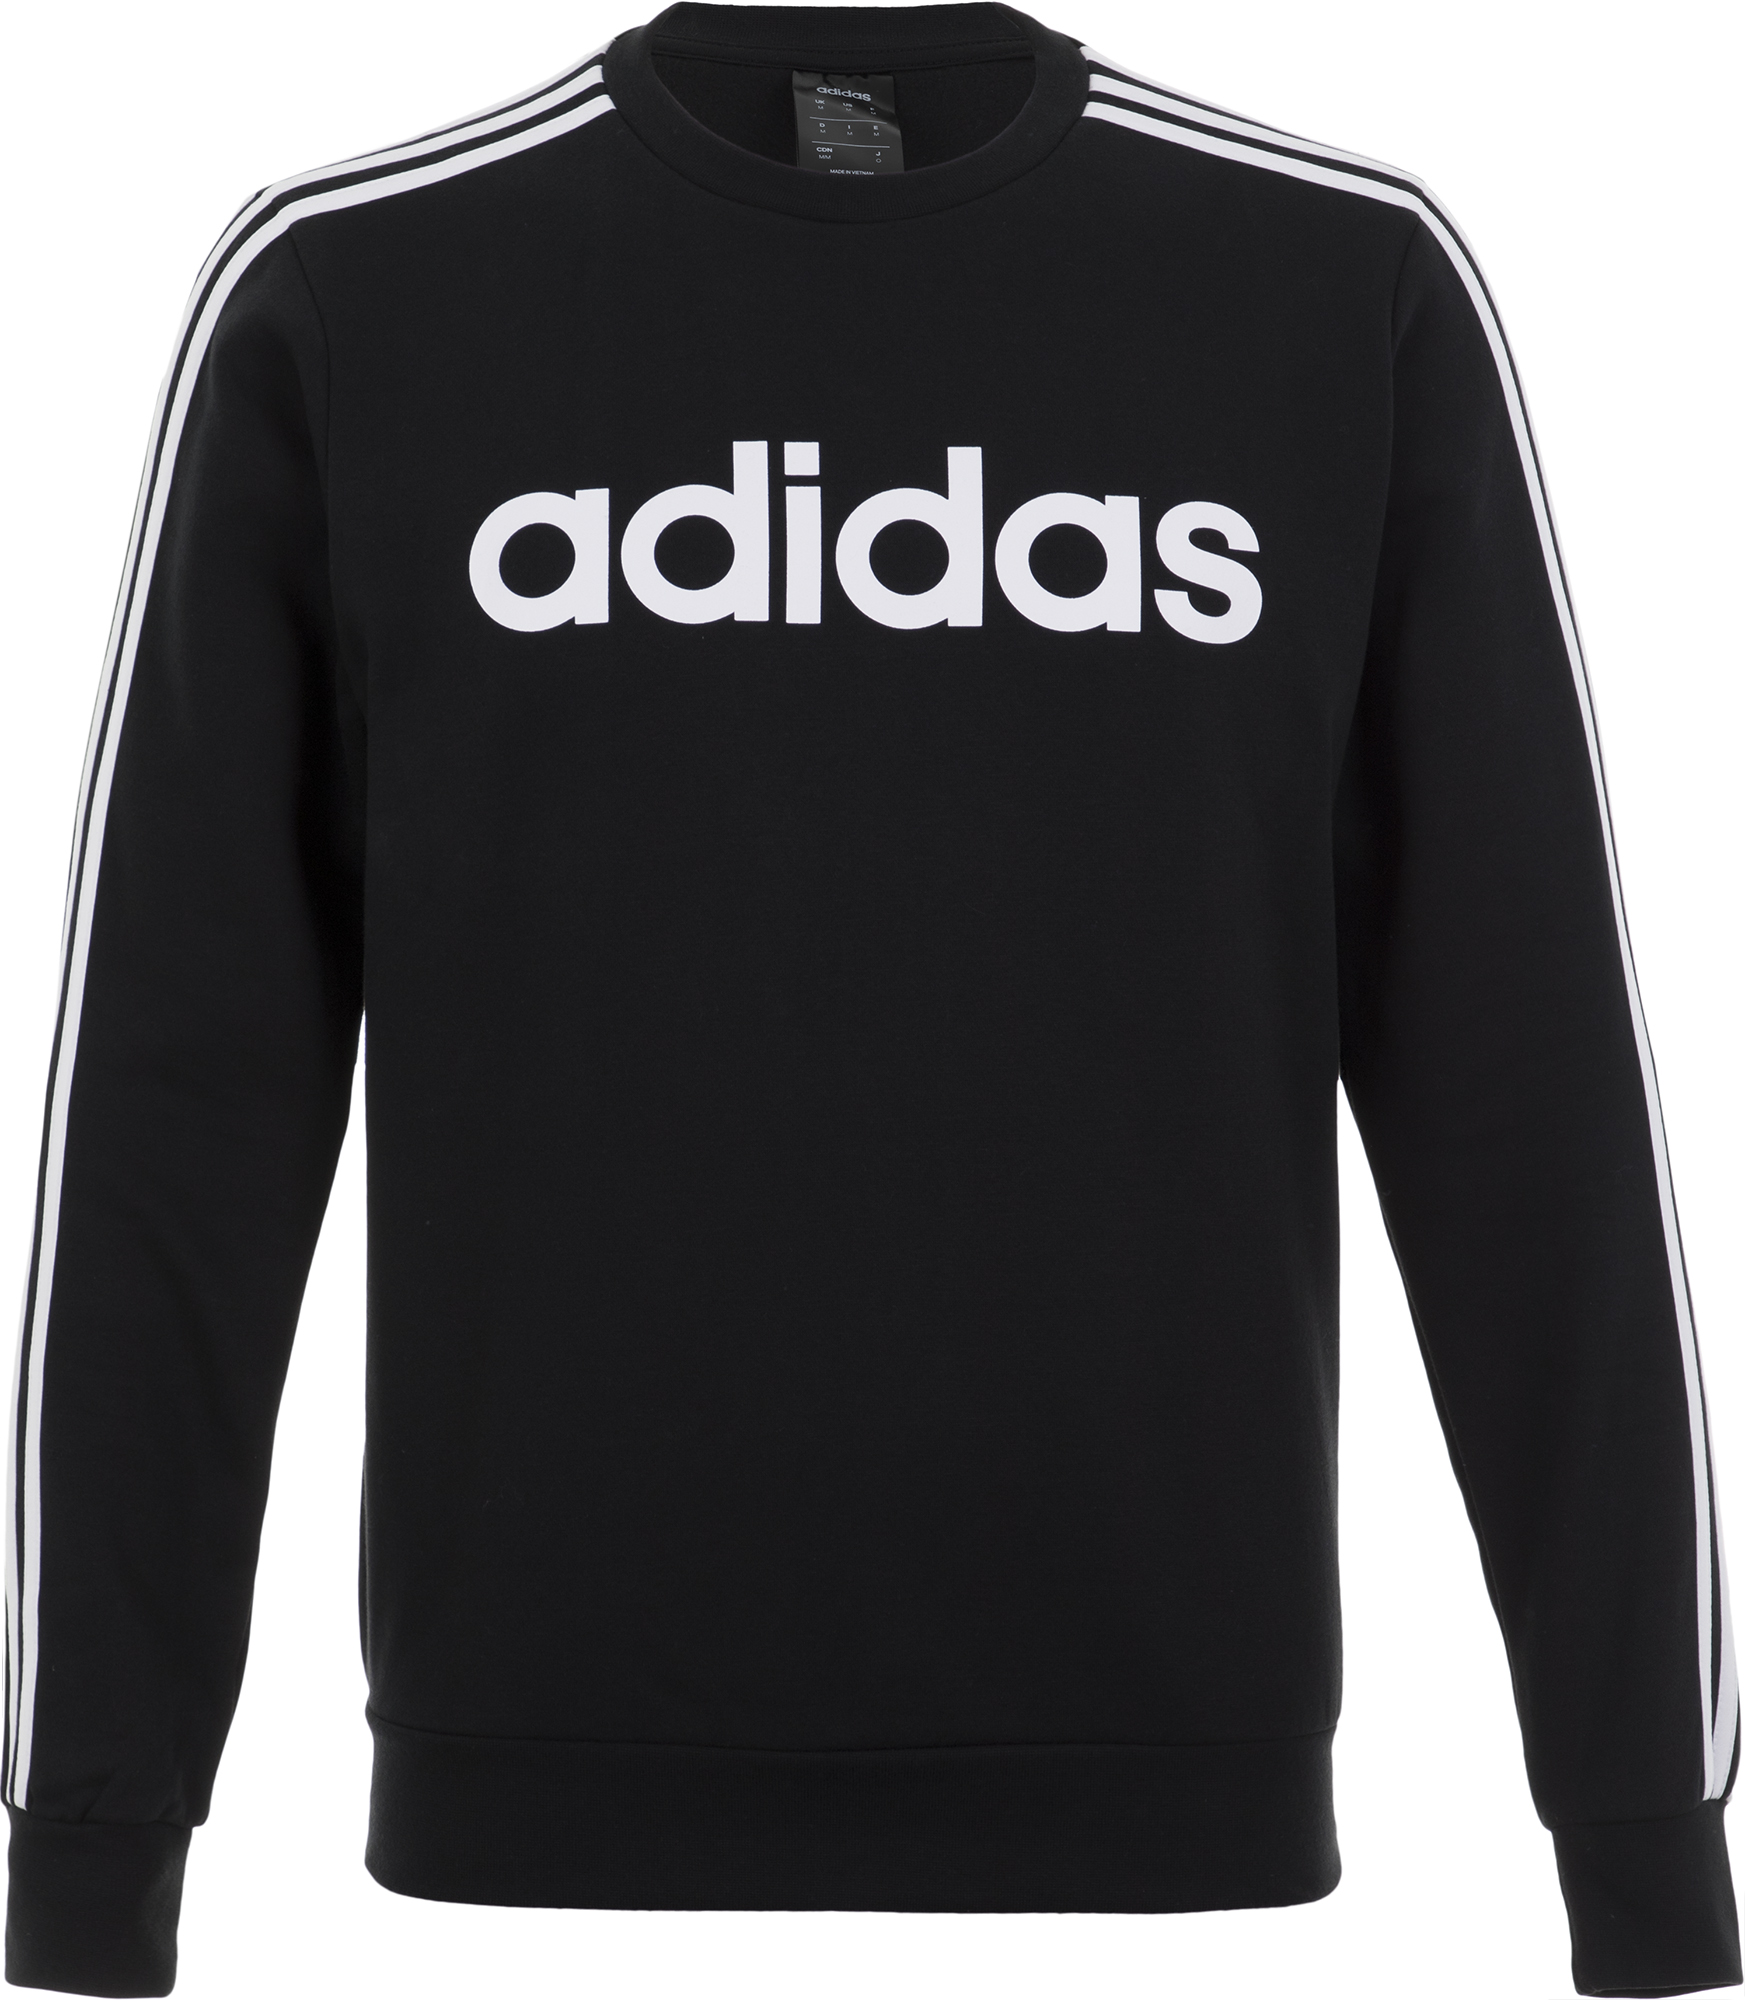 Adidas Свитшот мужской Adidas Essential 3-Stripes Crew, размер 56 все цены